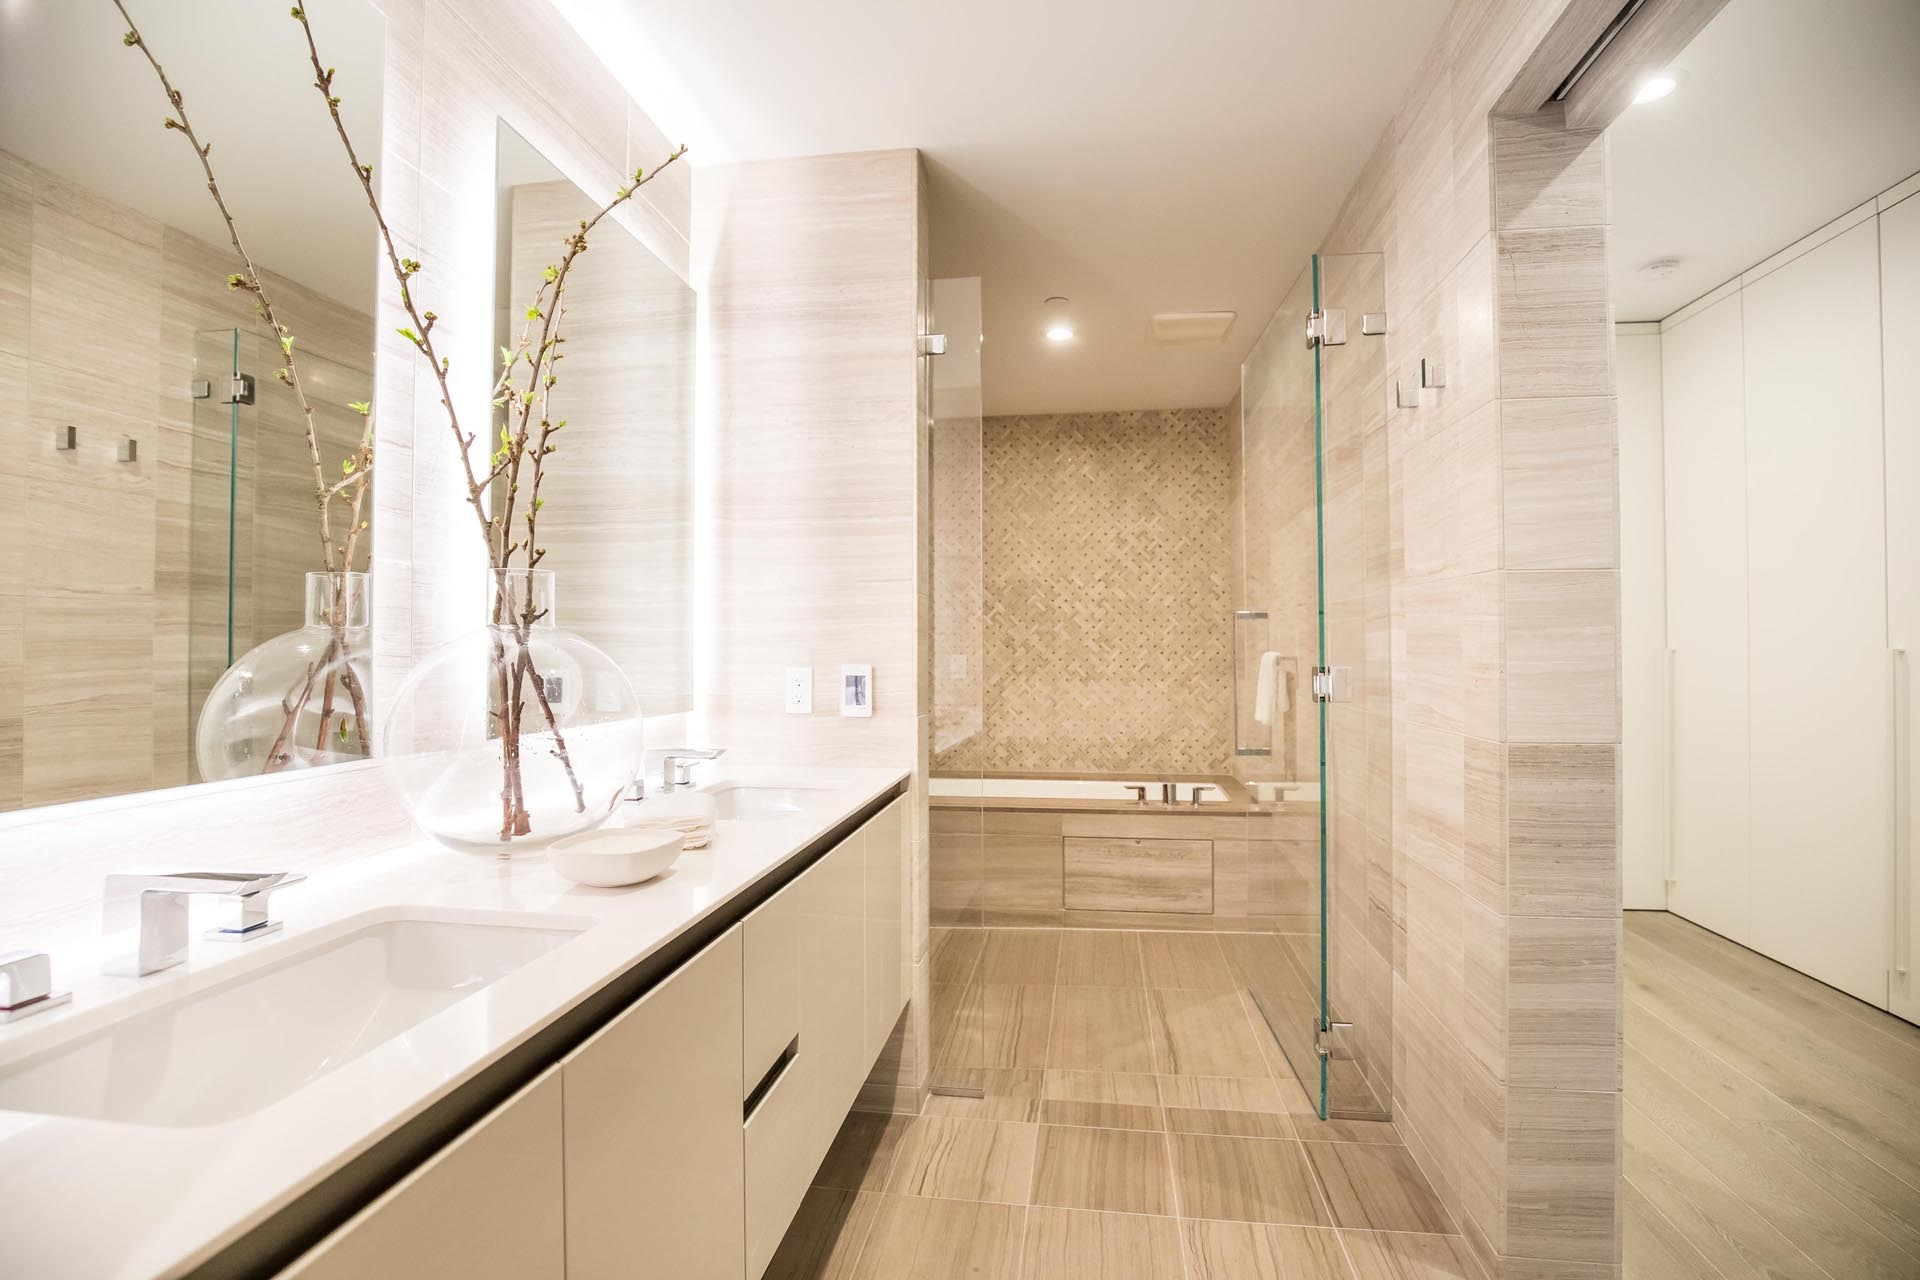 A modern bathroom with a neutral color palette.